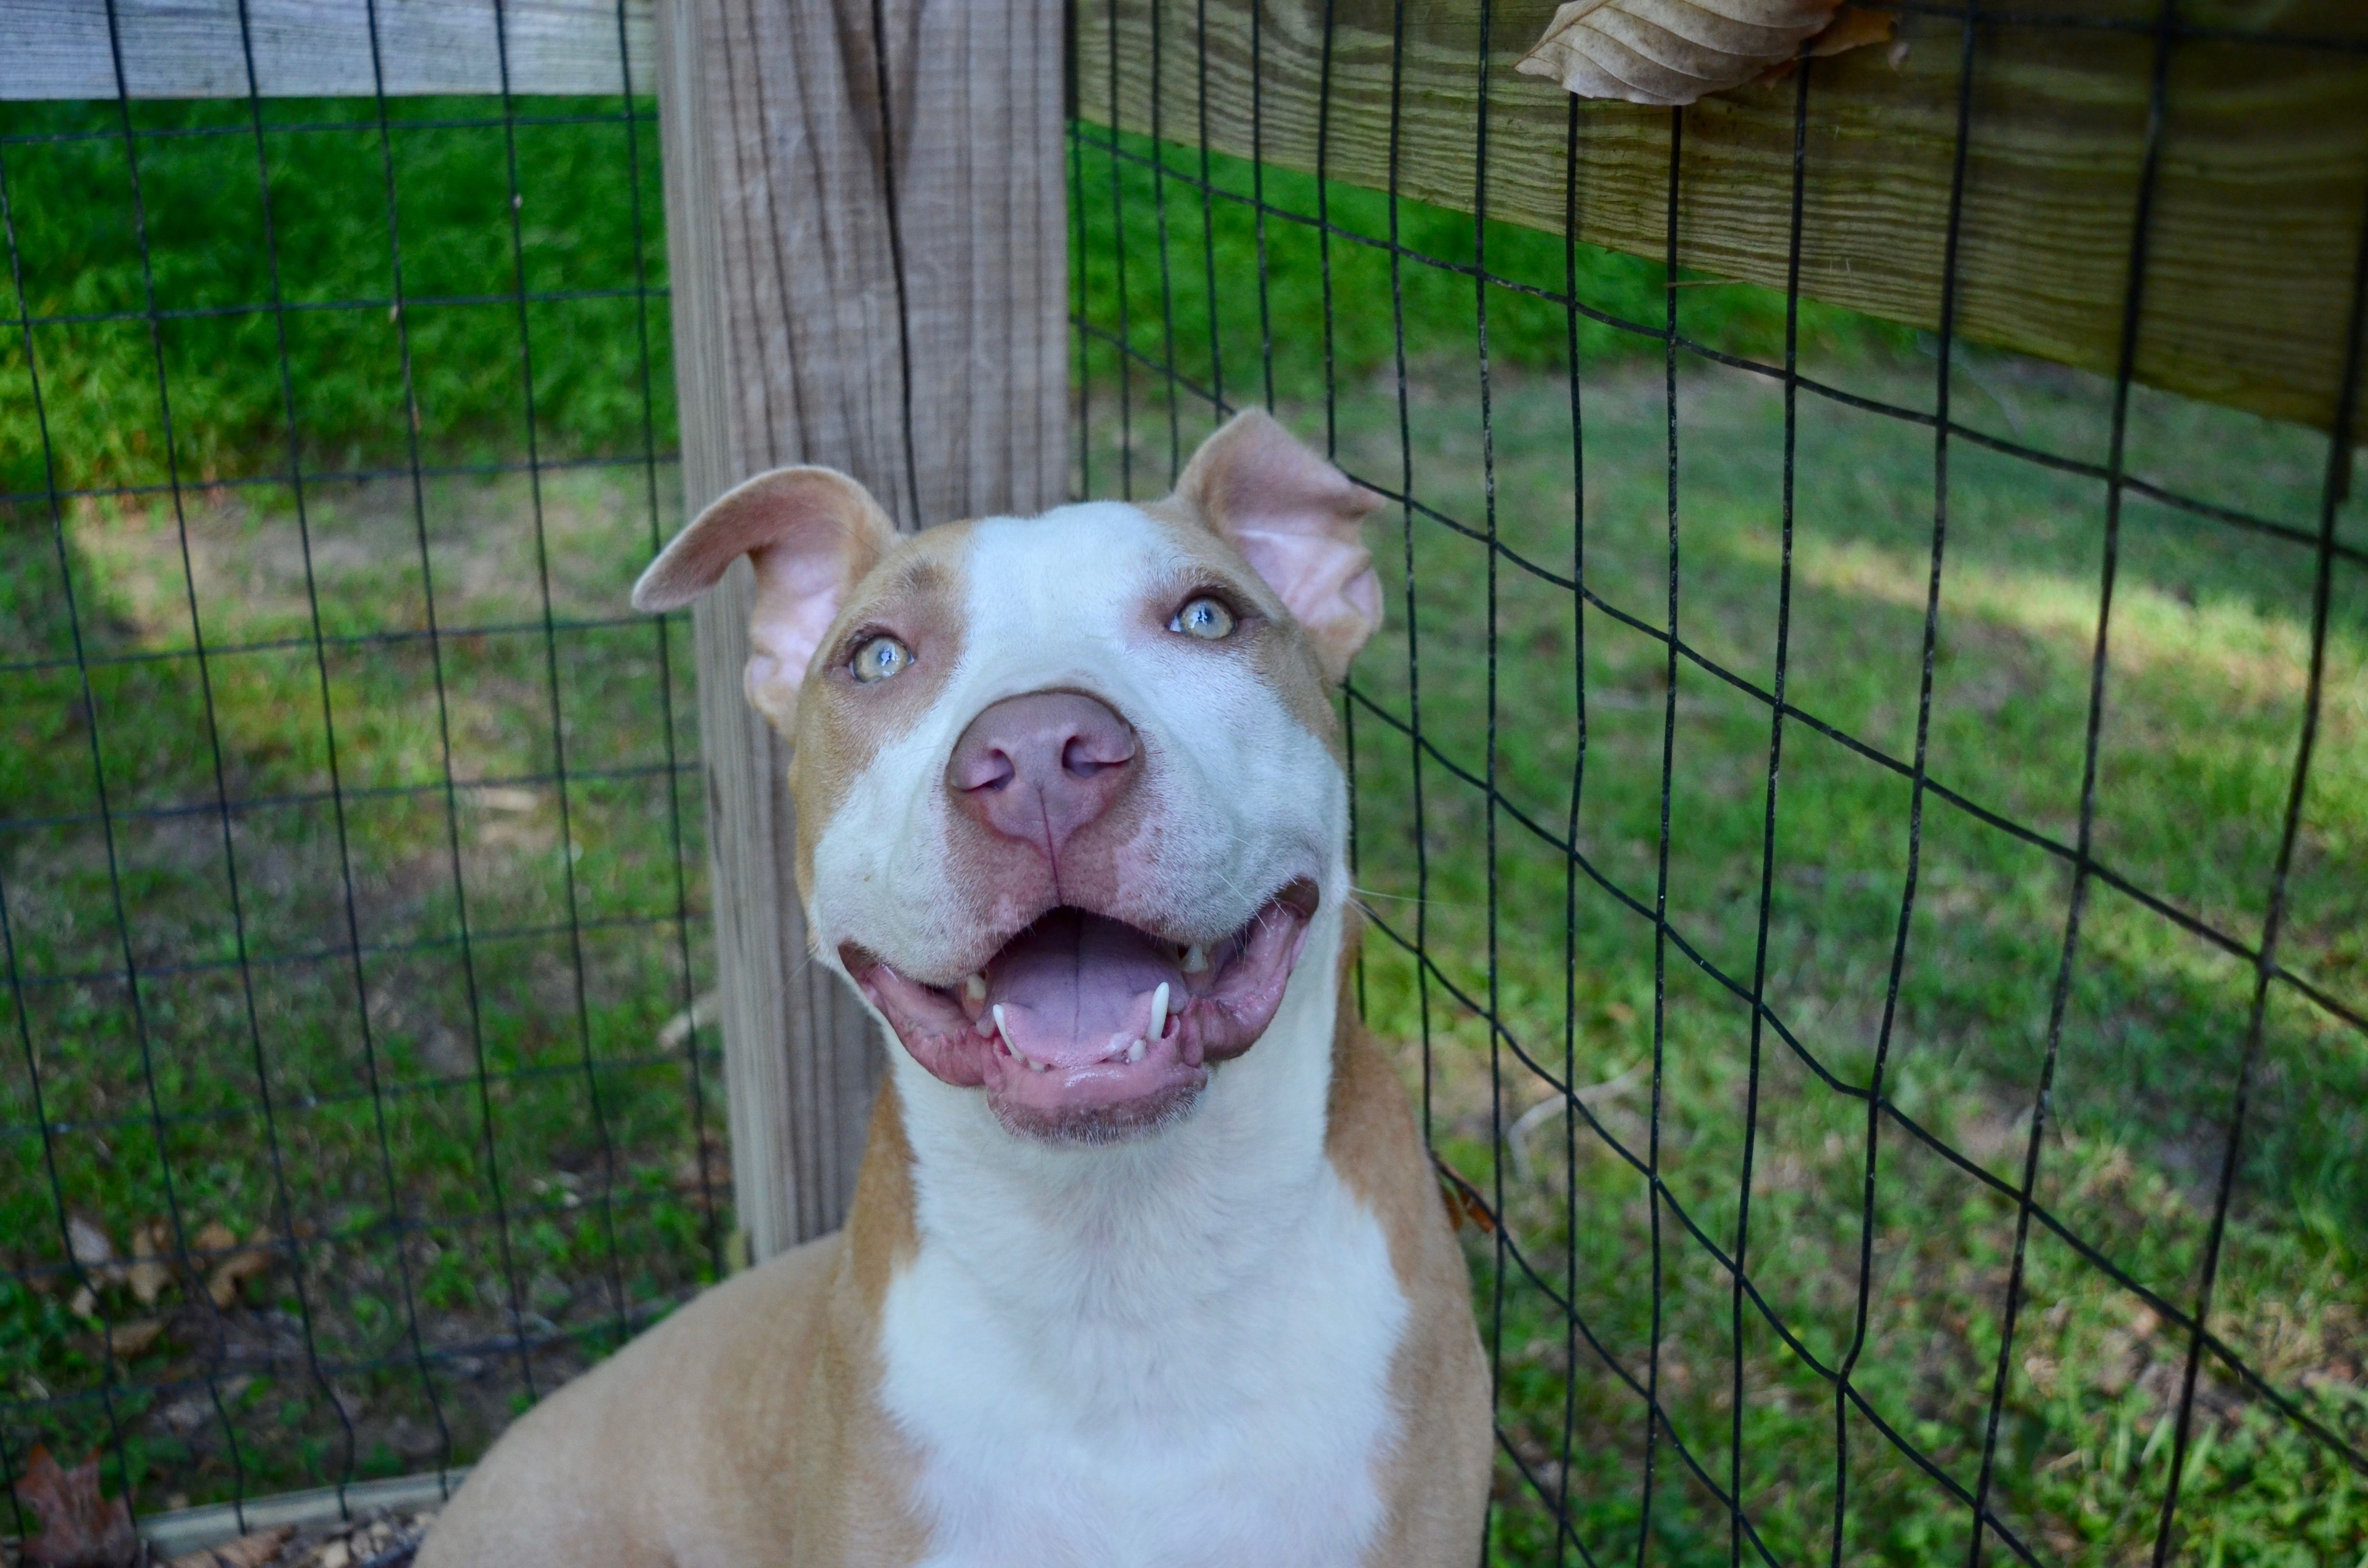 Chyna is an adoptable Dog Terrier searching for a